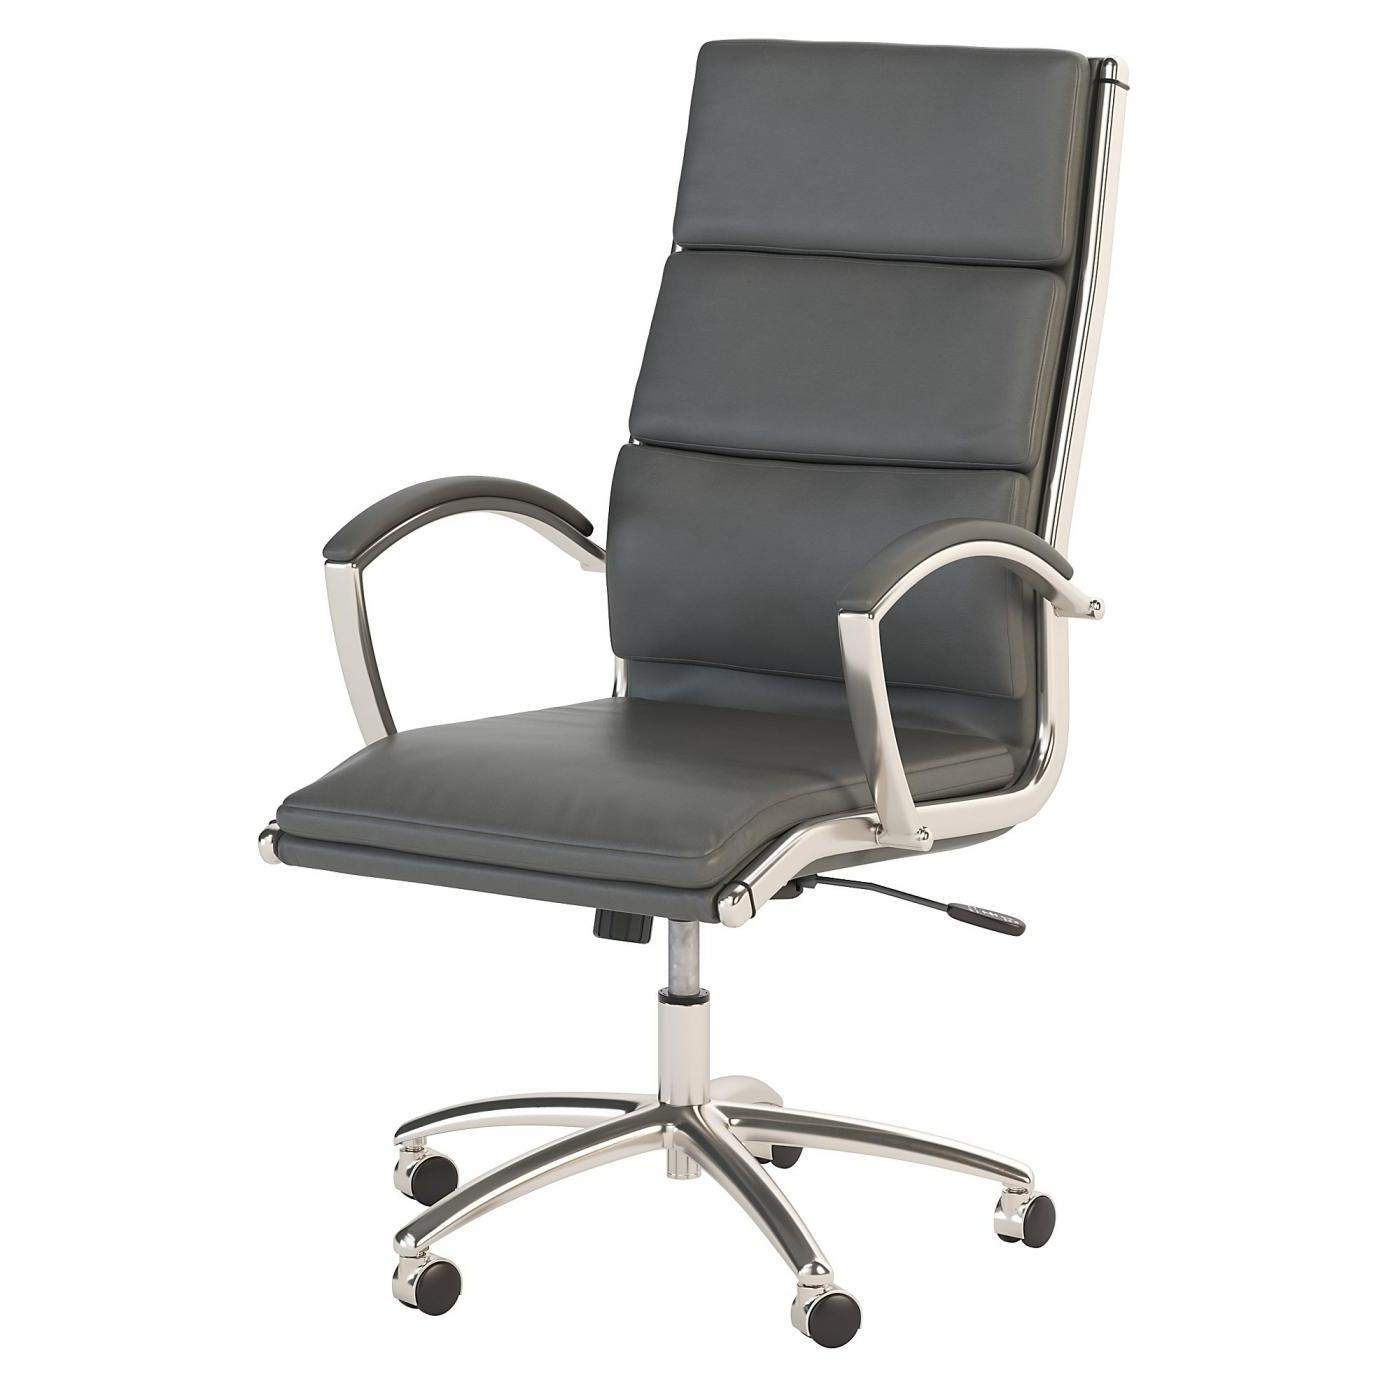 <font color=#c60><b>BUSH BUSINESS FURNITURE MODELO HIGH BACK LEATHER EXECUTIVE OFFICE CHAIR #EH-CH1701DGL-03. FREE SHIPPING:</font></b> </font></b></font></b>